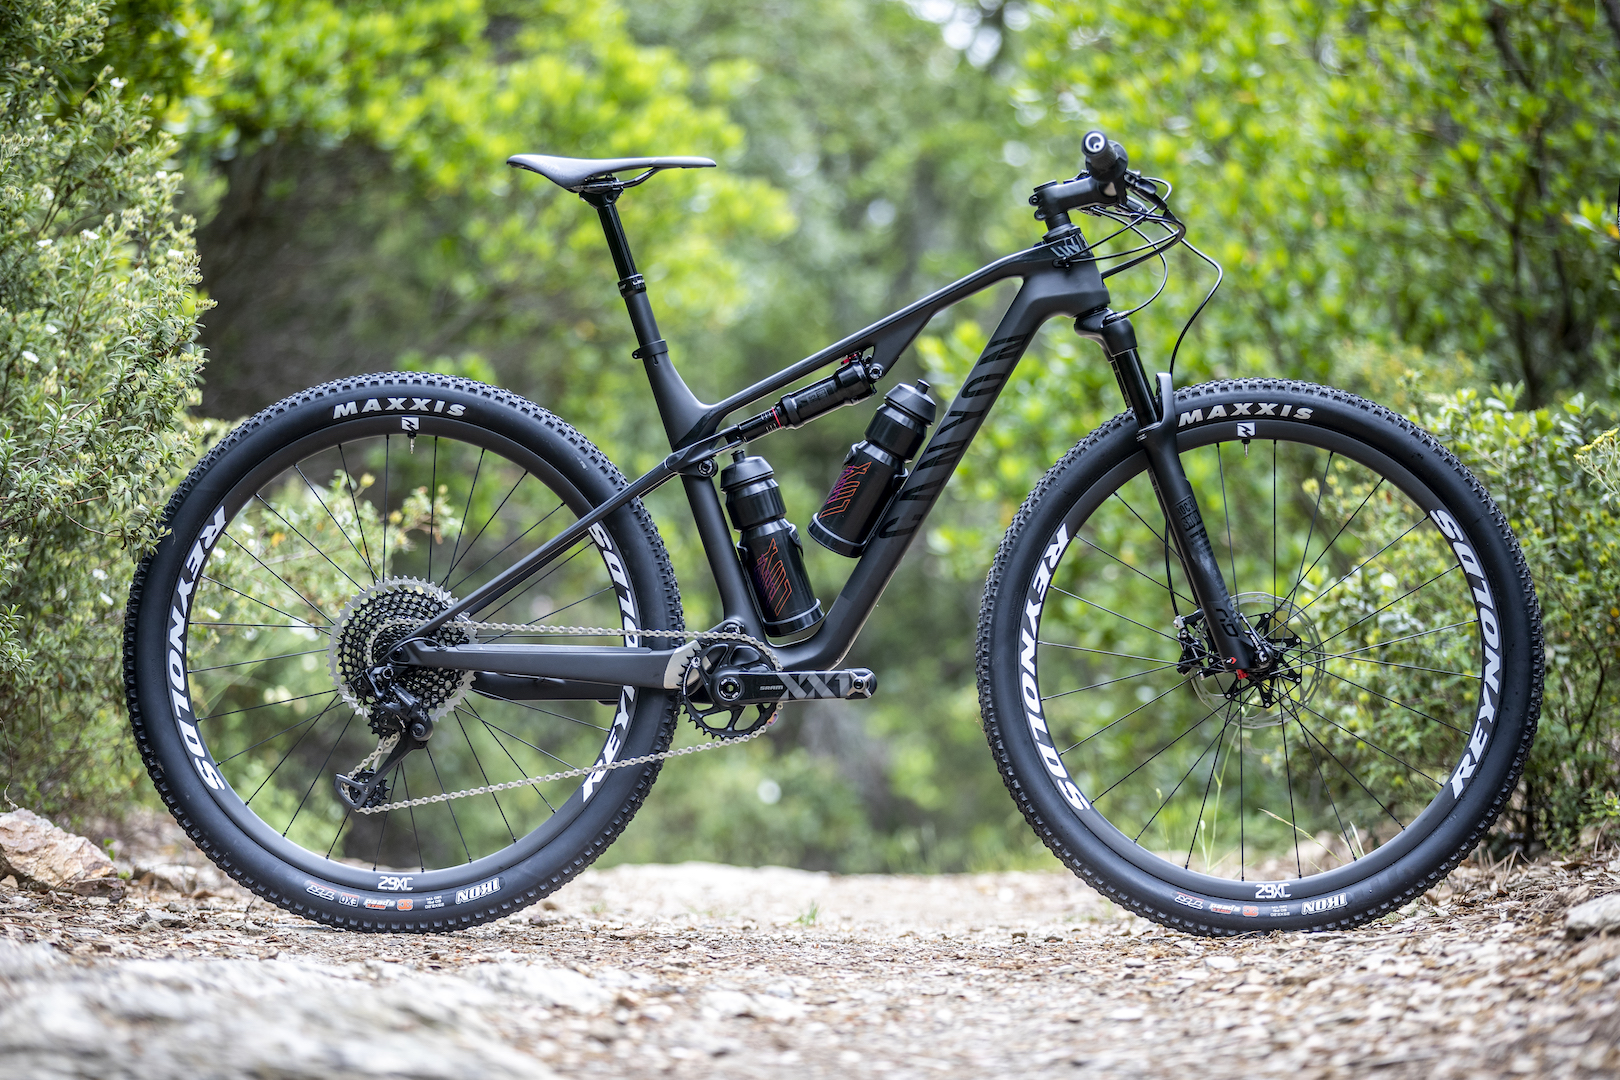 9b6e1788c90 First Ride Review: 2019 Canyon Lux CF SLX 9.0 Pro Race - Singletrack ...